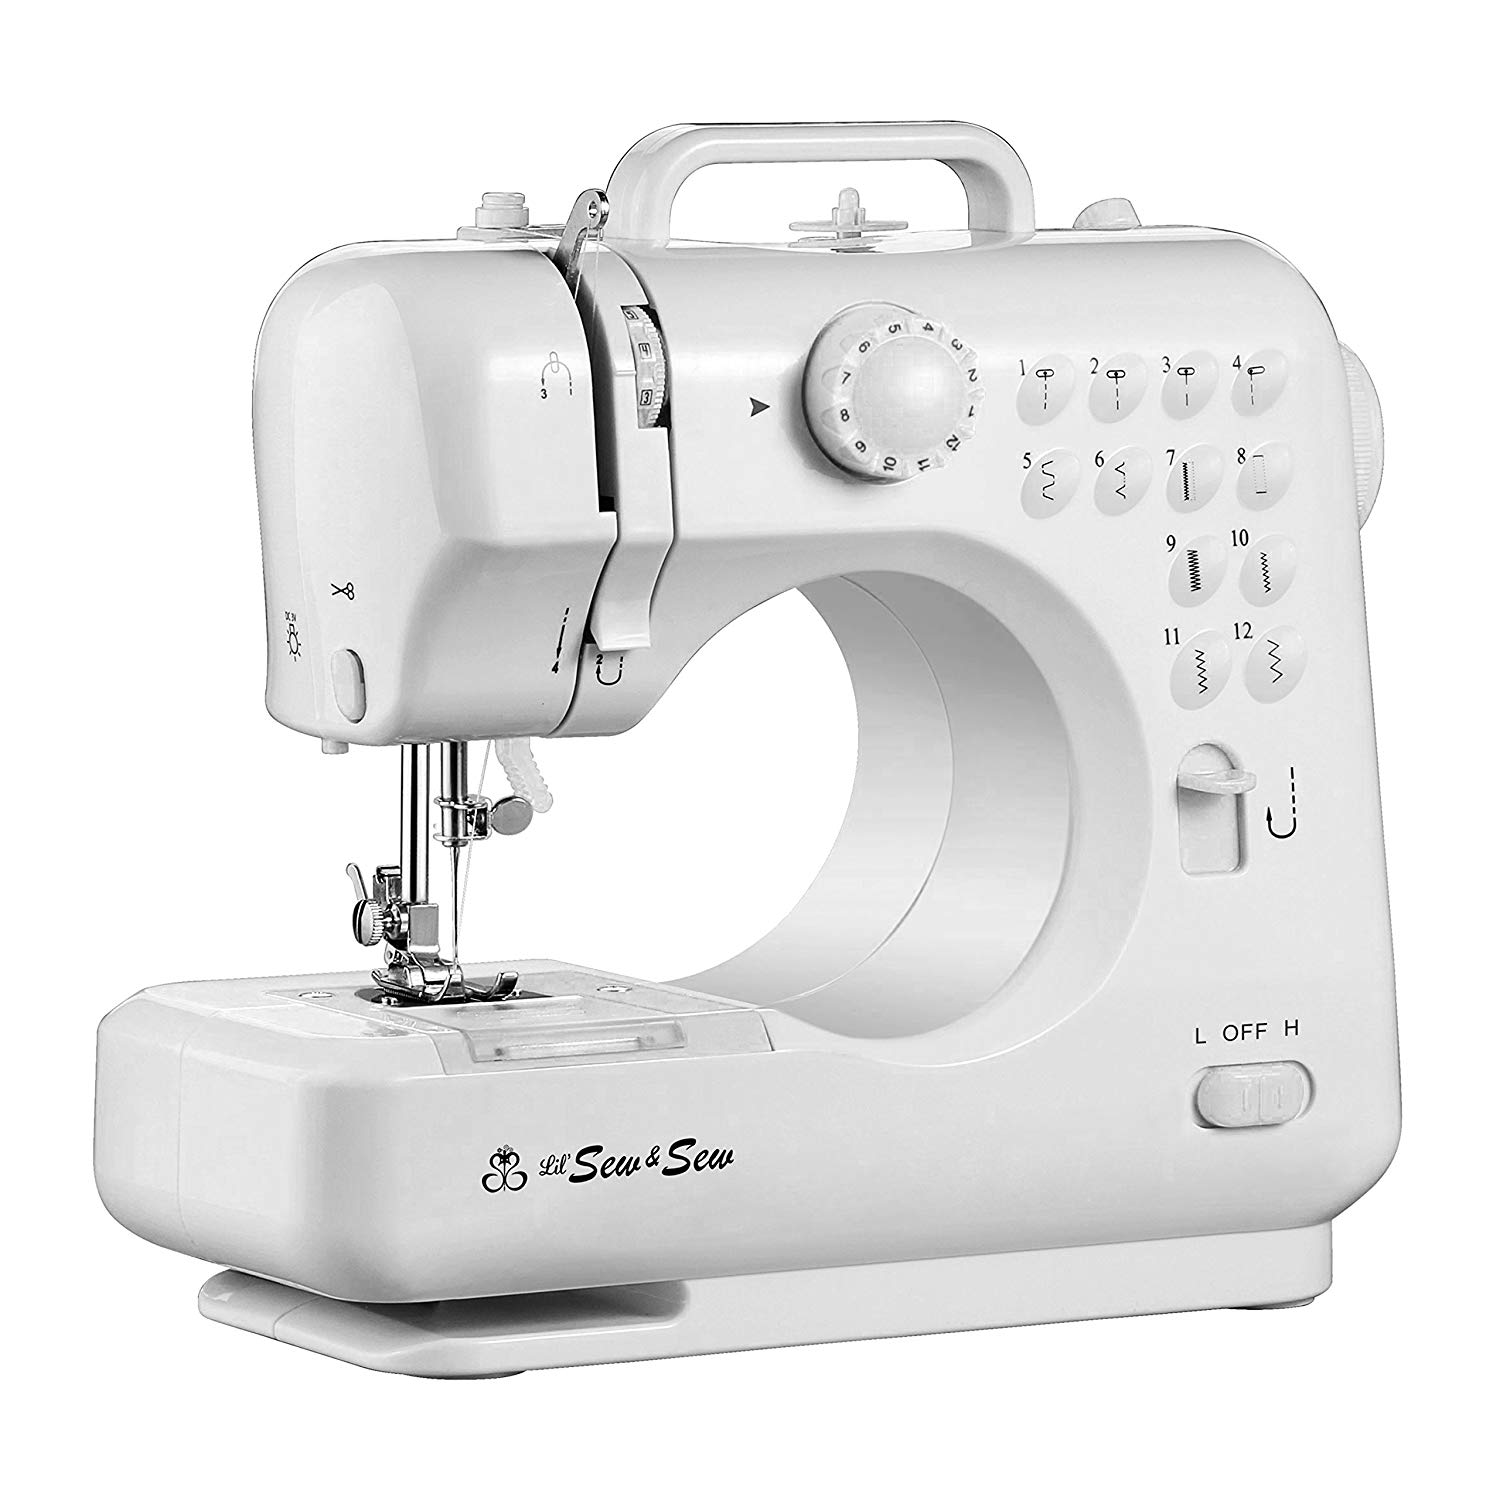 Top 6 Best Mini Sewing Machines In U.S